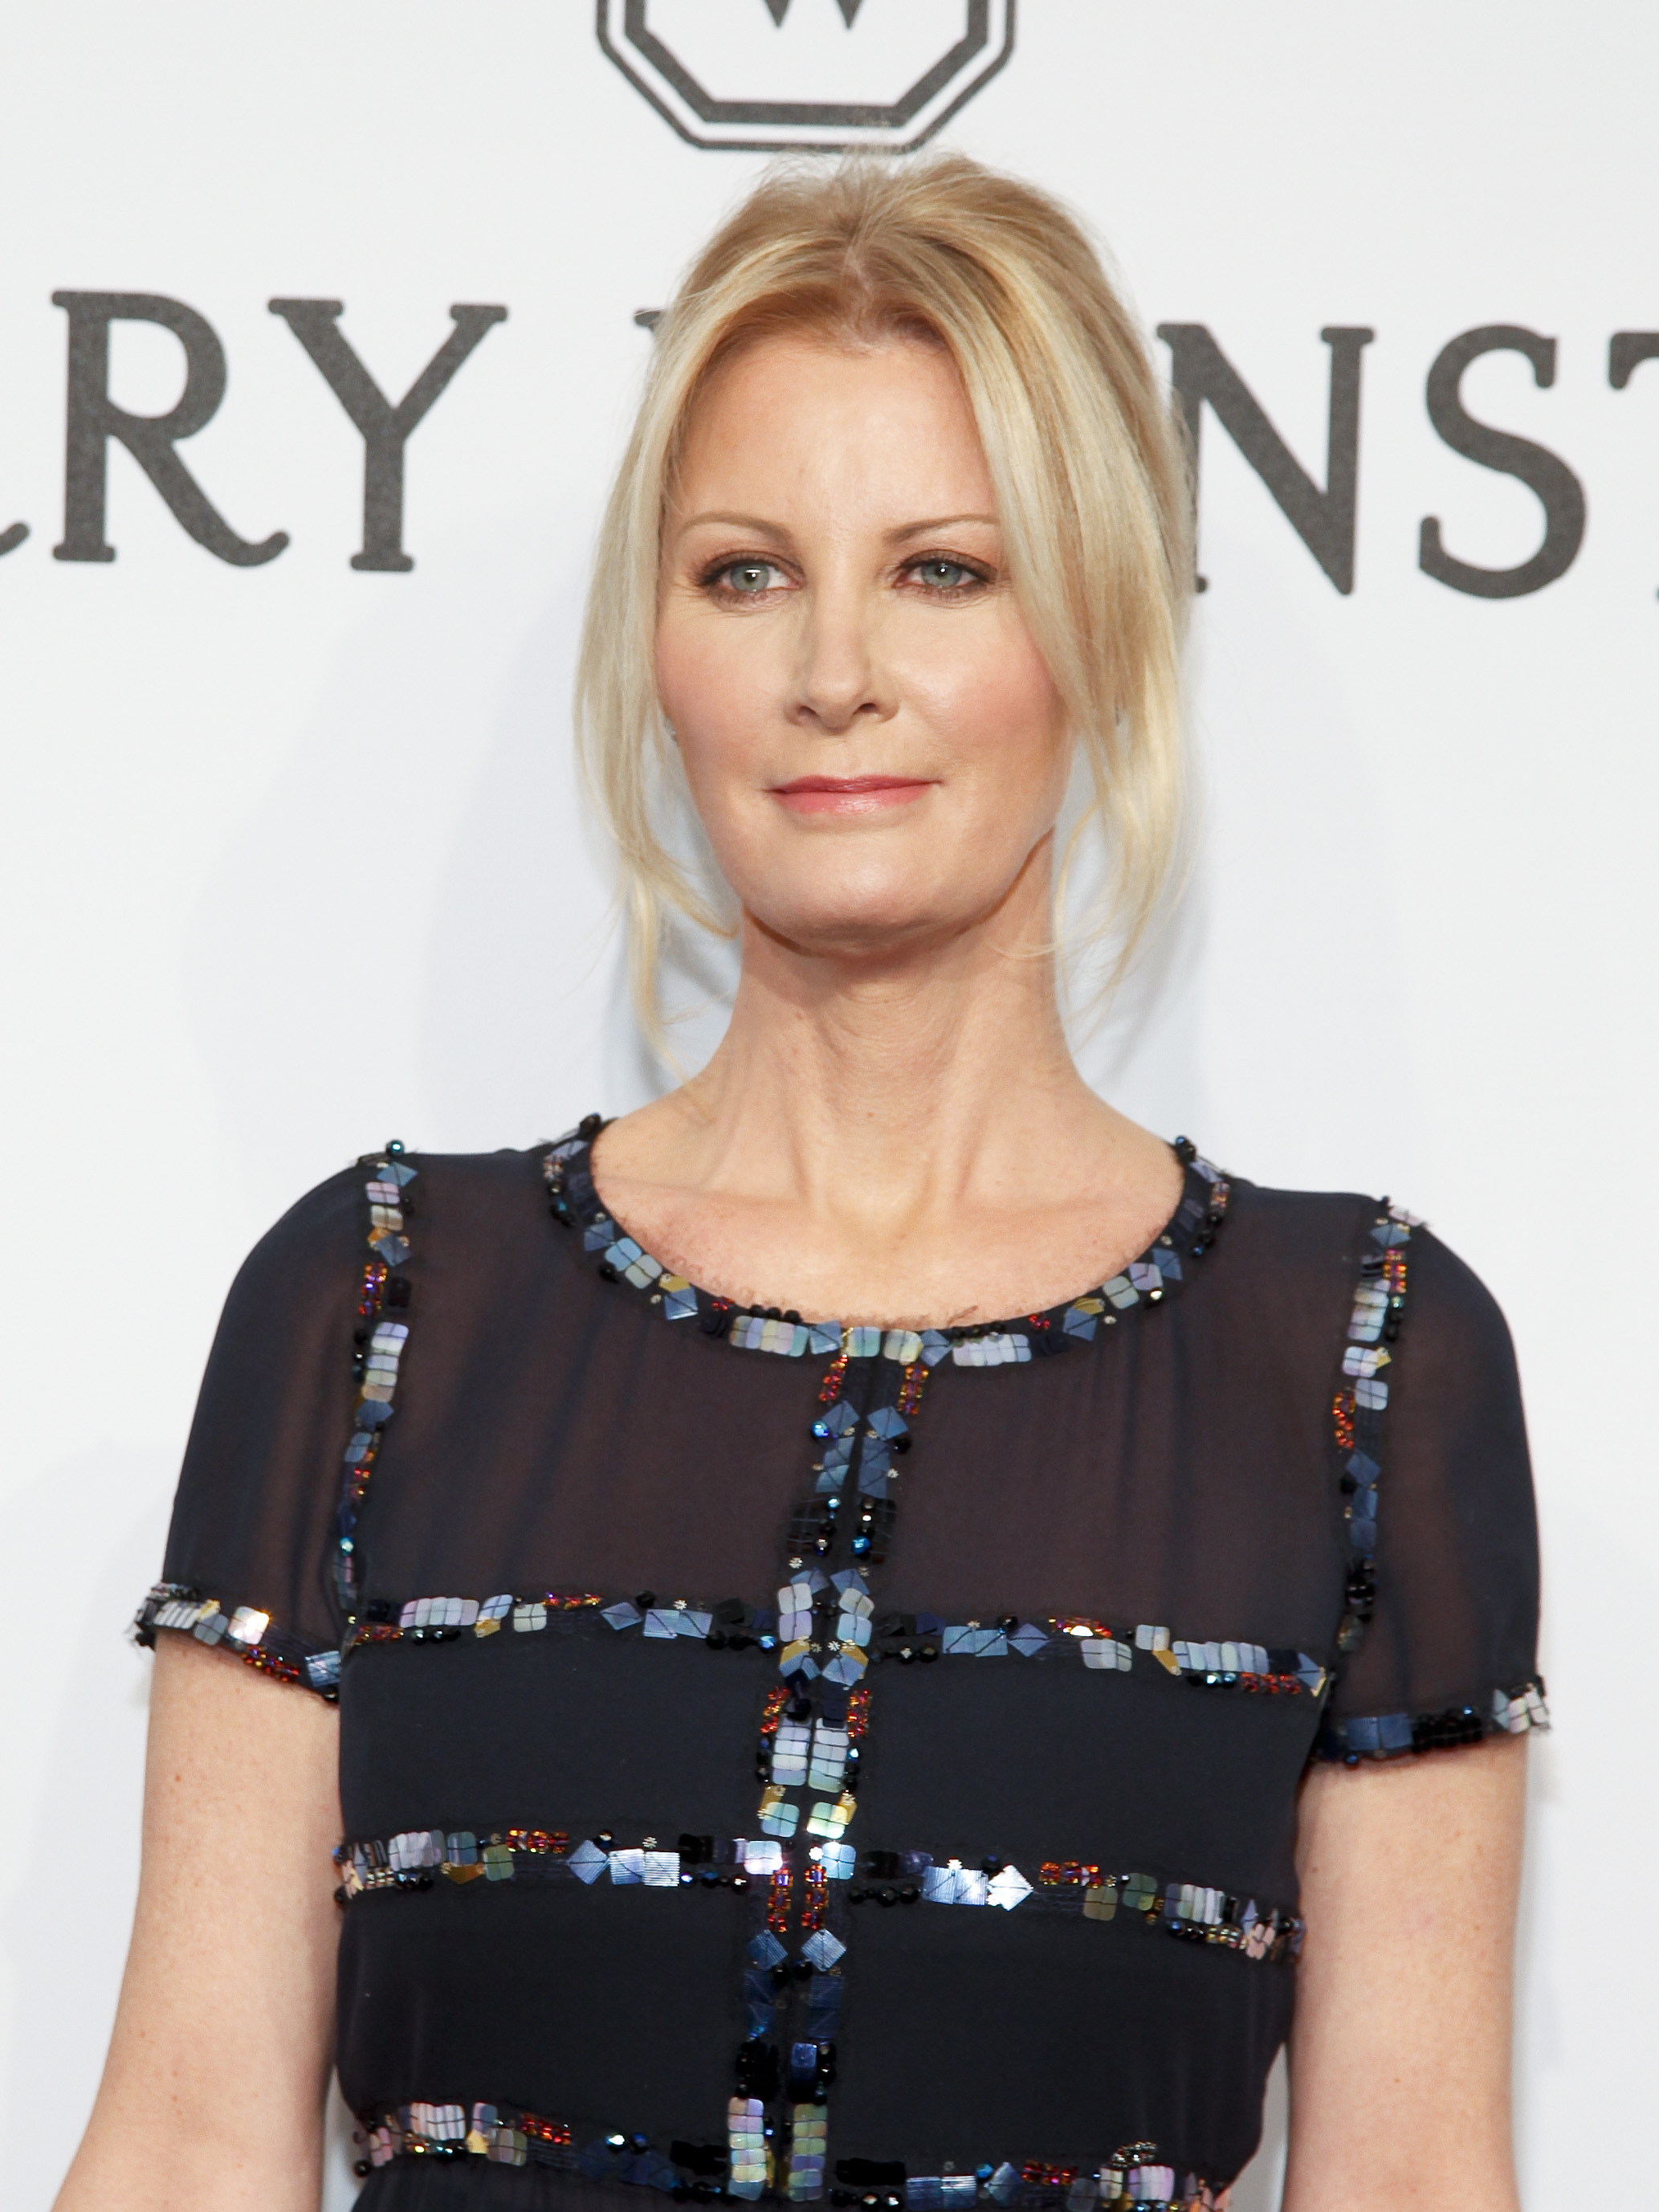 'People will see me on my knees and see me cry,' says TV chef Sandra Lee of her cancer survival film at Sundance